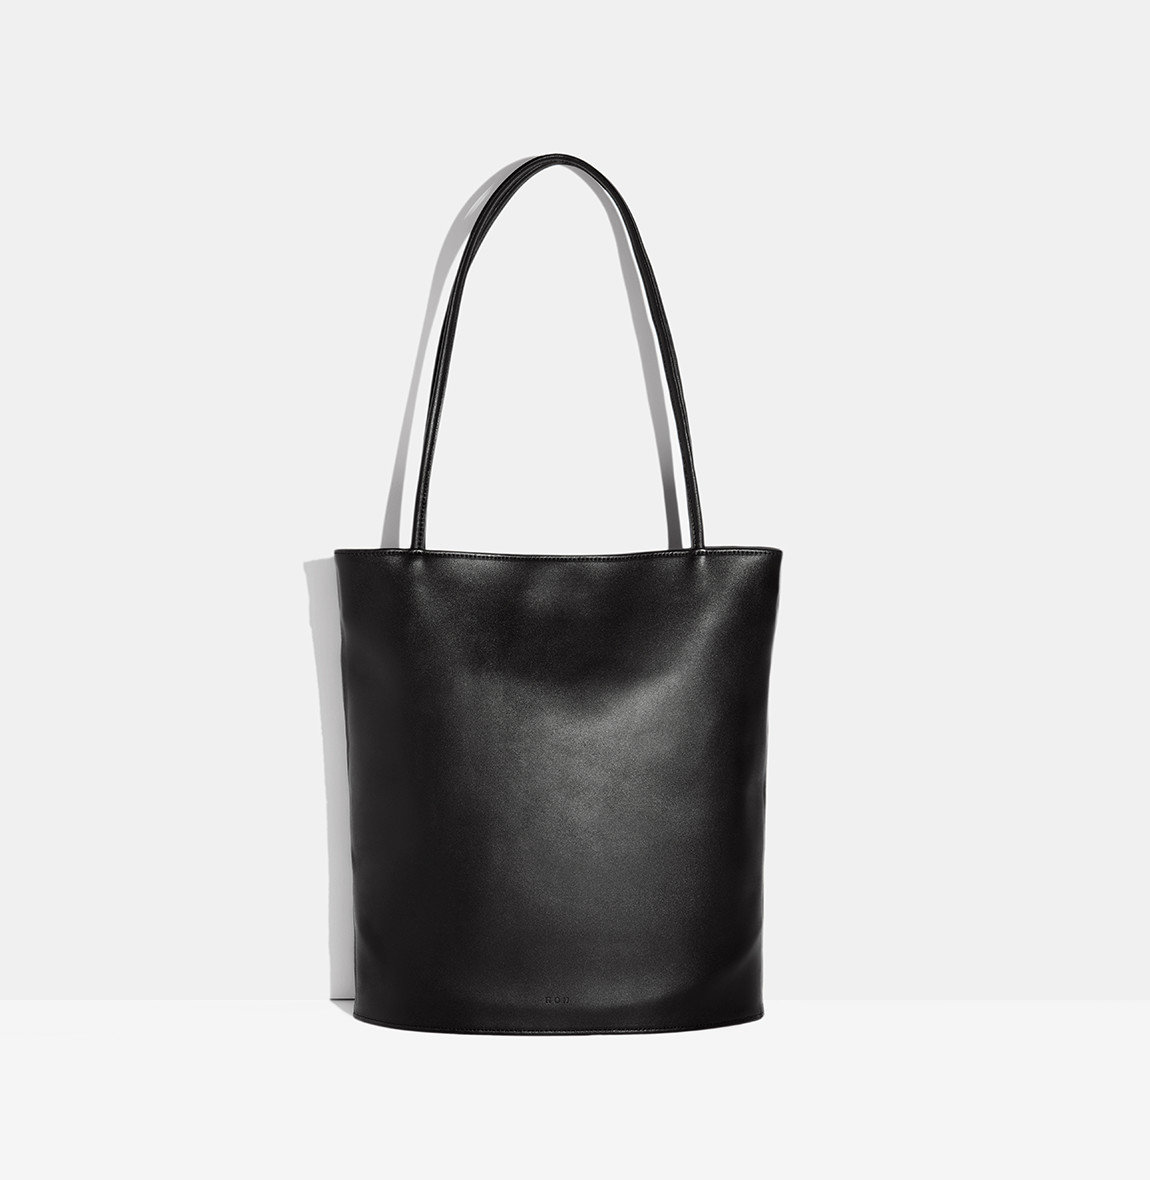 Oval Shoulder Bag Black